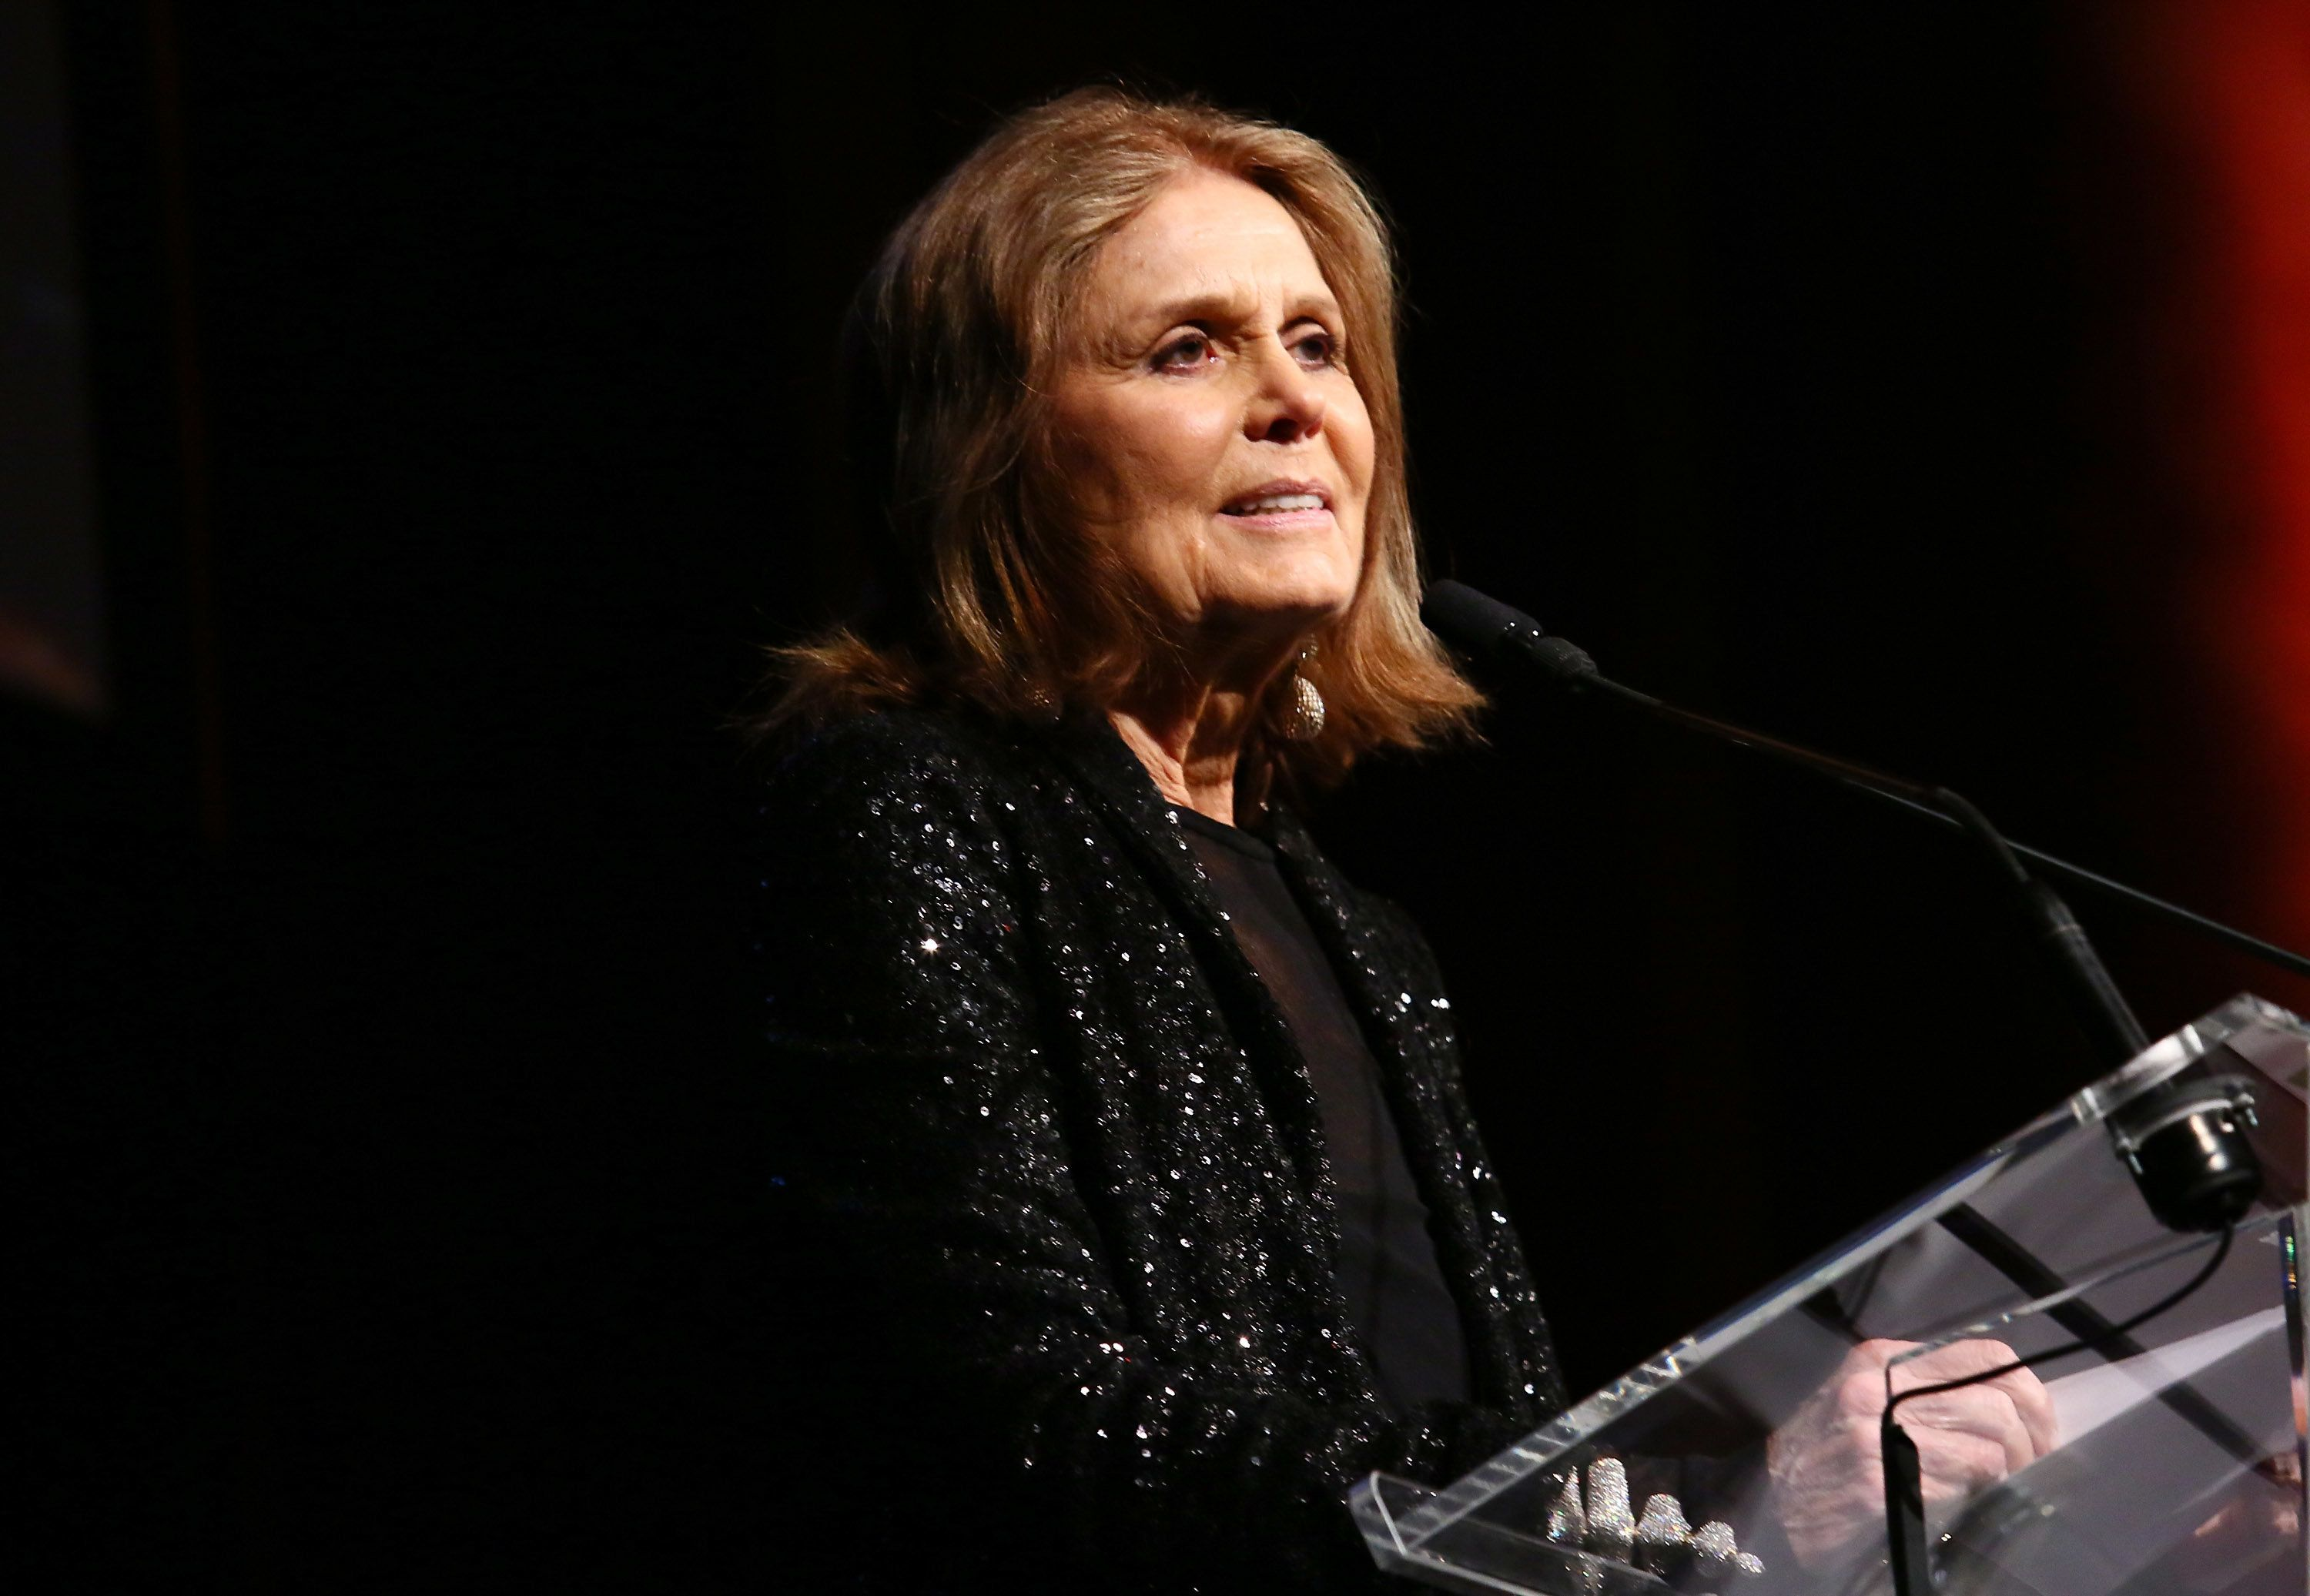 NEW YORK, NY - MAY 03:  Gloria Steinem speaks onstage at the Ms. Foundation for Women 2017 Gloria Awards Gala & After Party at Capitale on May 3, 2017 in New York City.  (Photo by Astrid Stawiarz/Getty Images for The Foundation for Women)